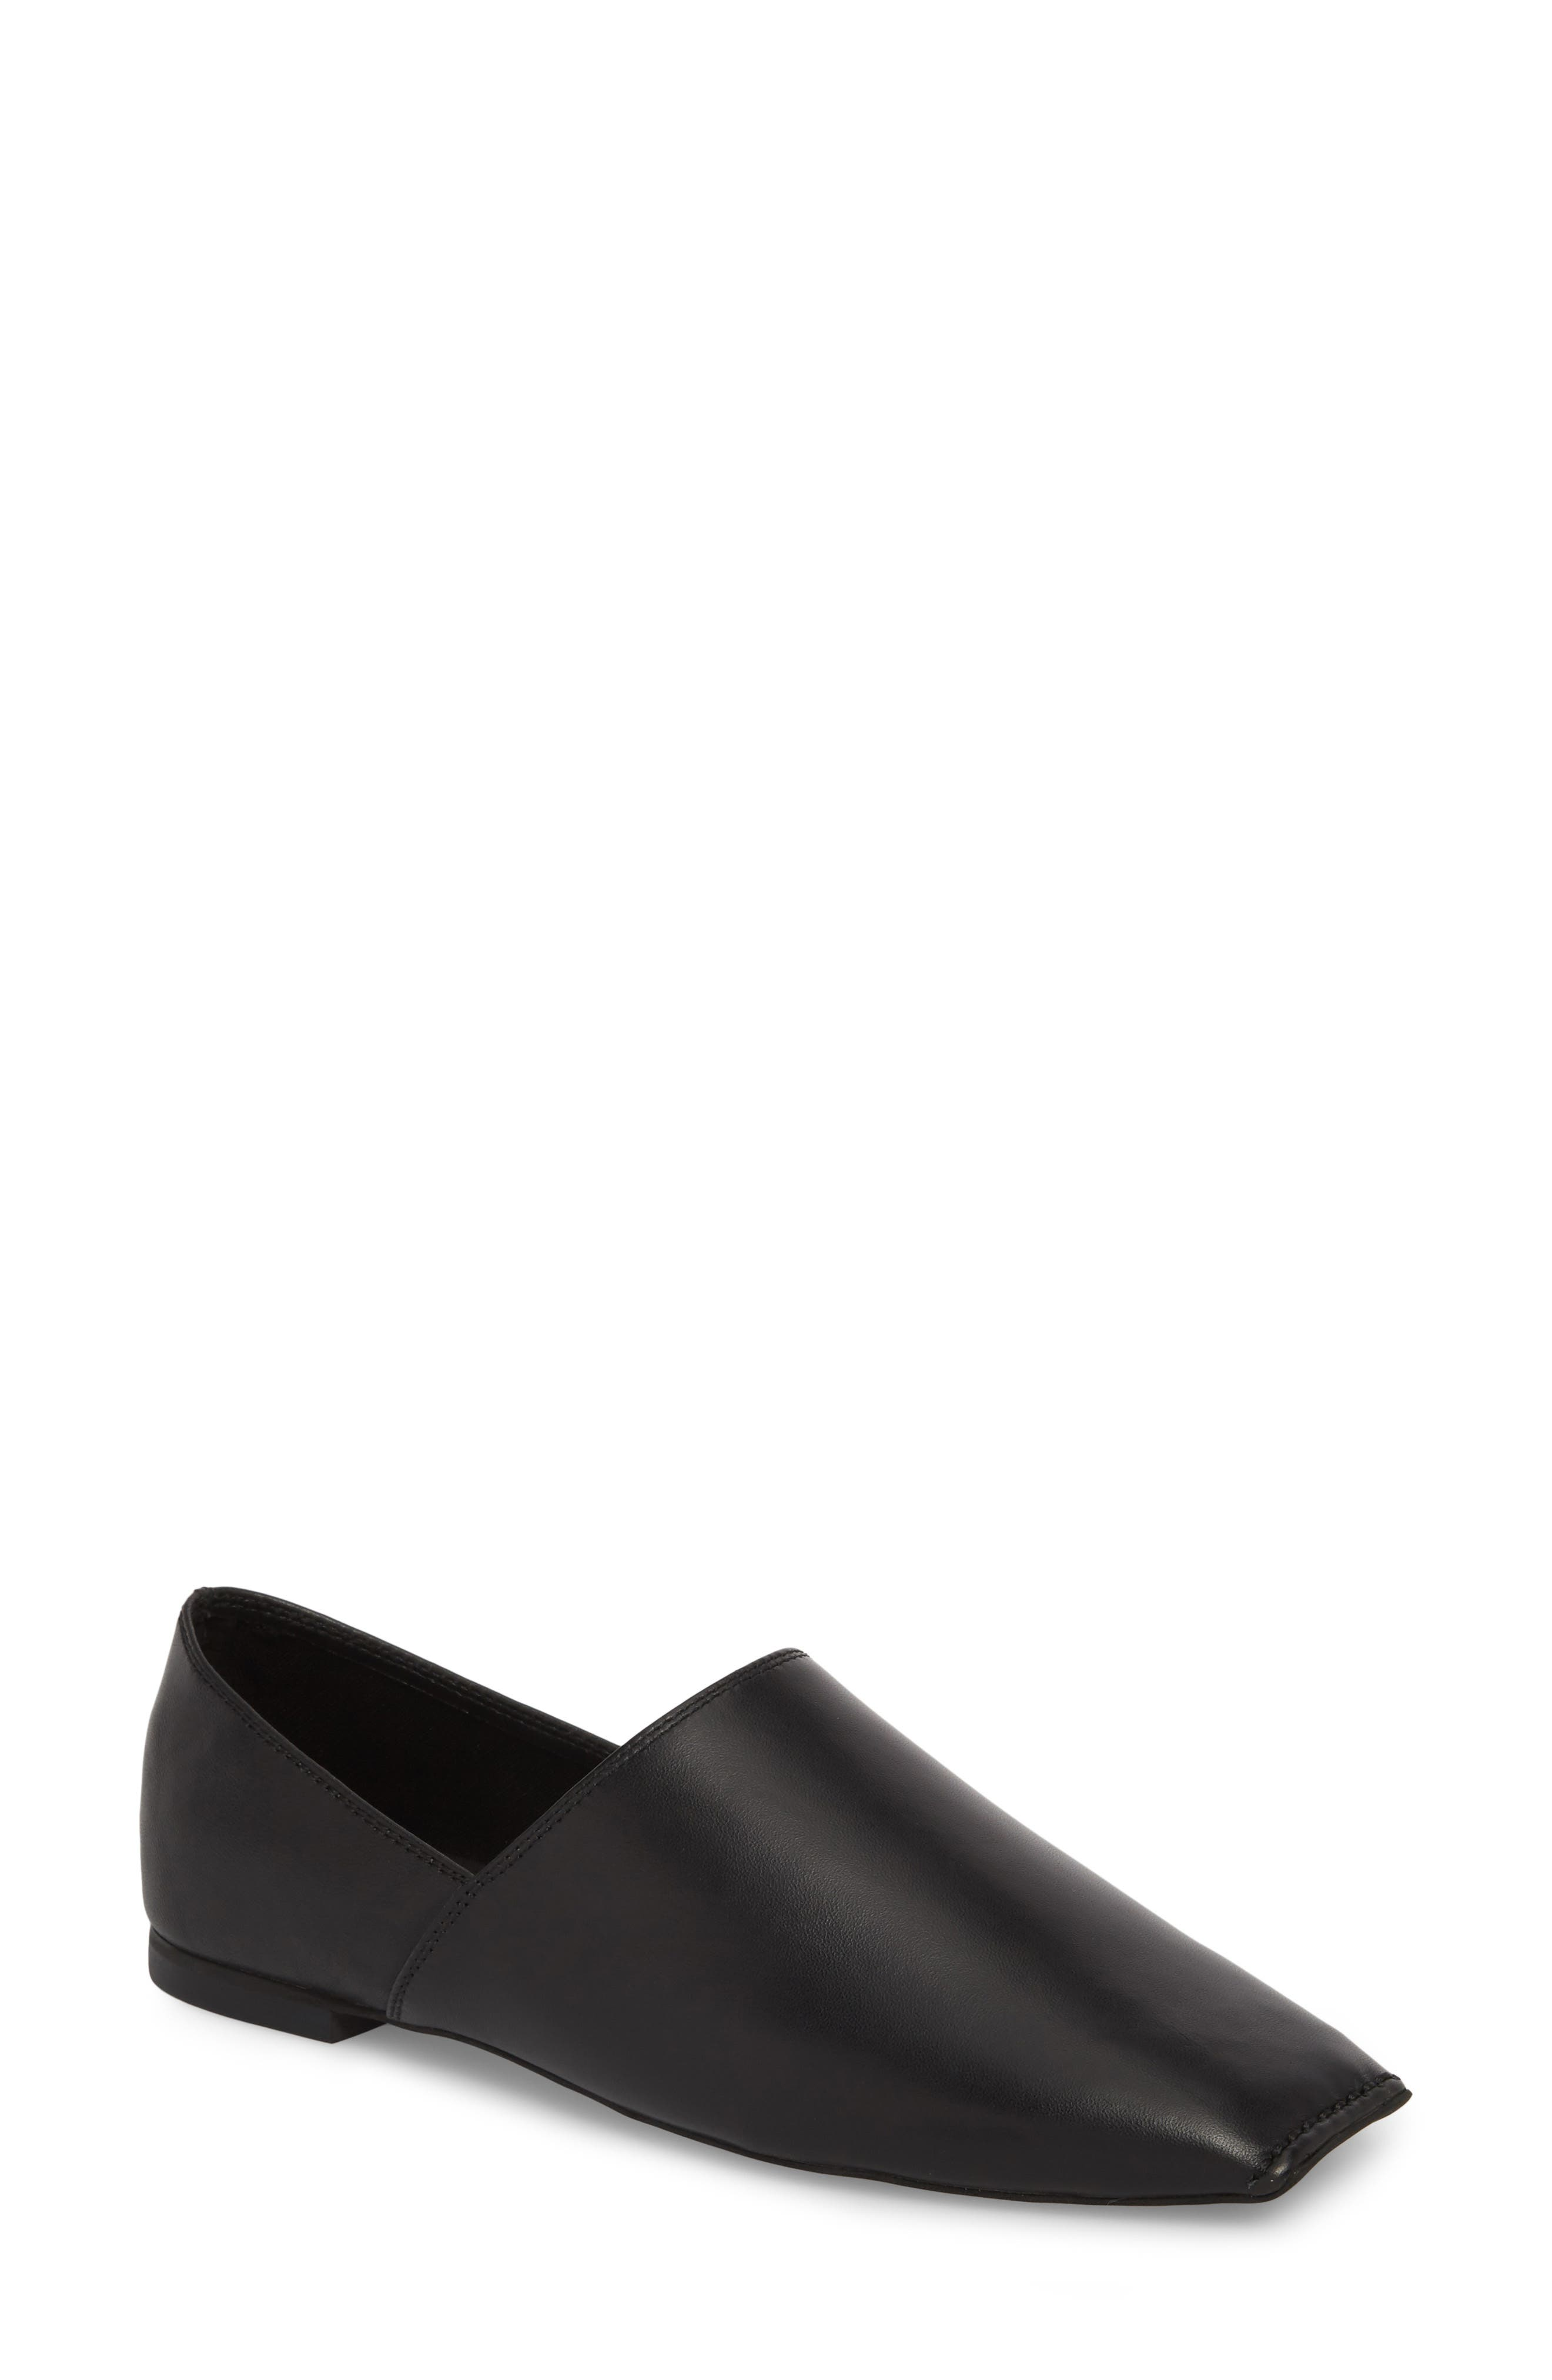 JEFFREY CAMPBELL Lanvale Blunted Toe Flat, Main, color, 001